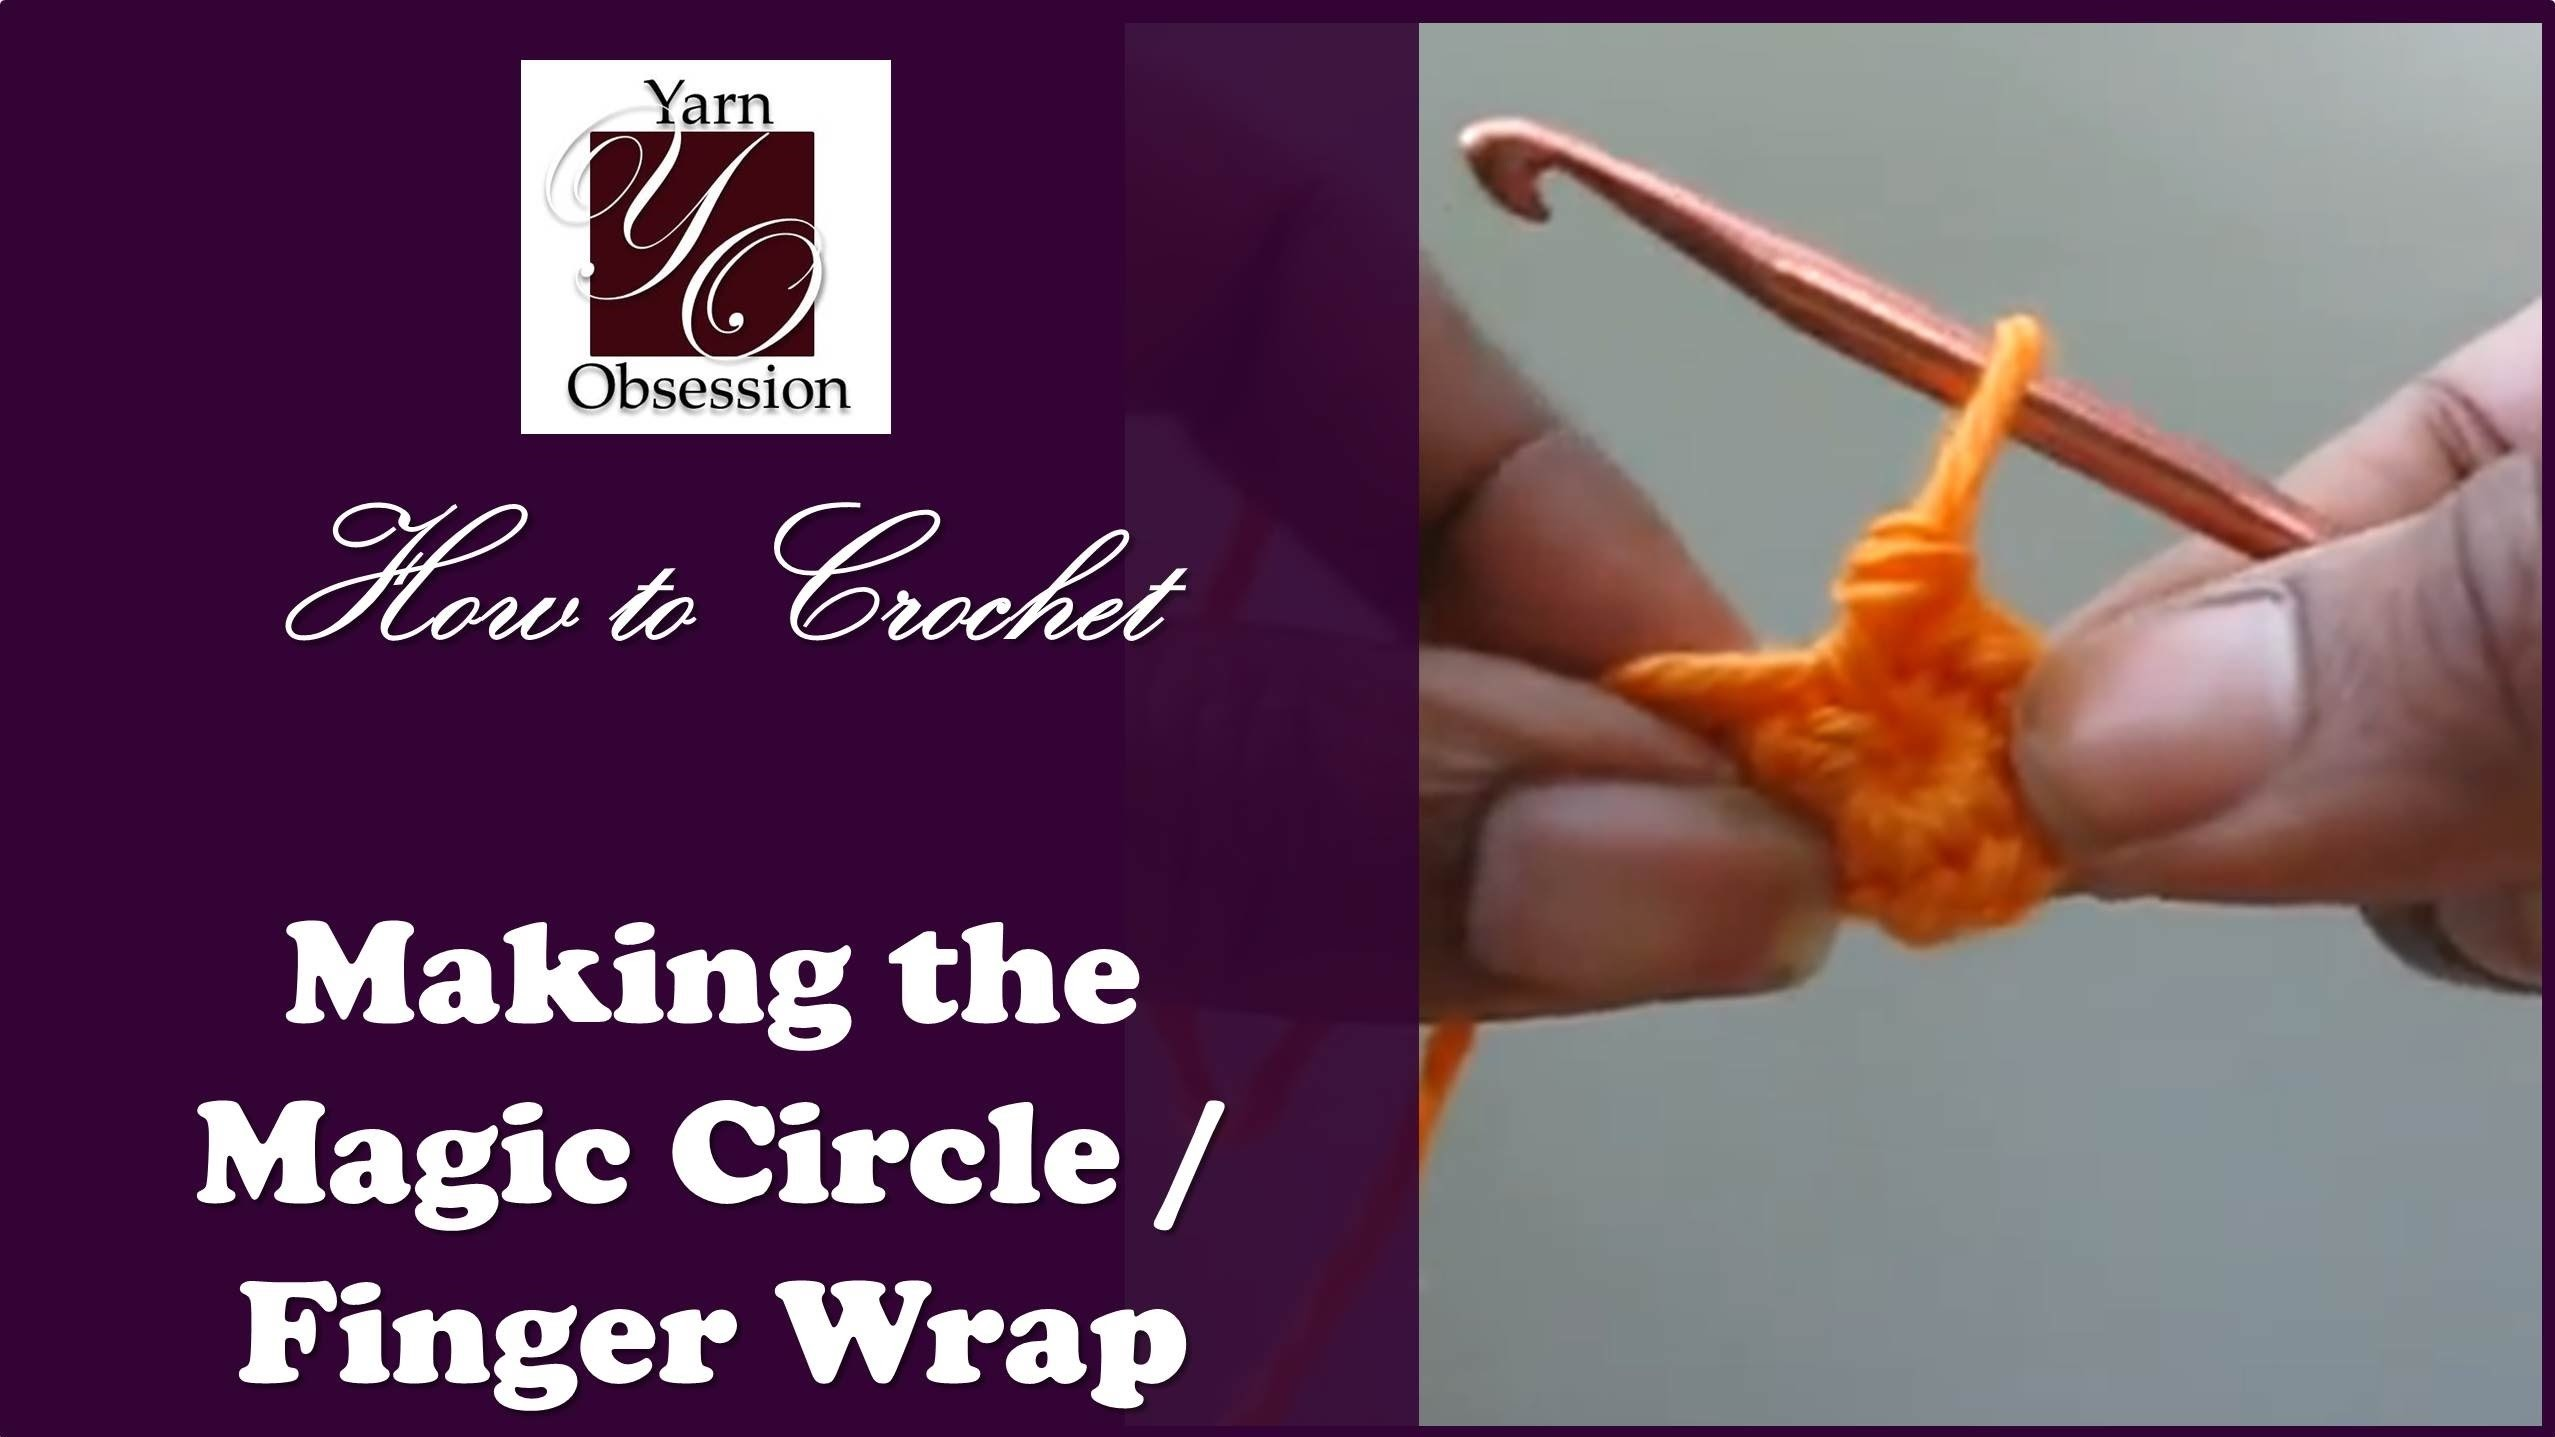 How To Crochet - The Magic Circle or Finger Wrap